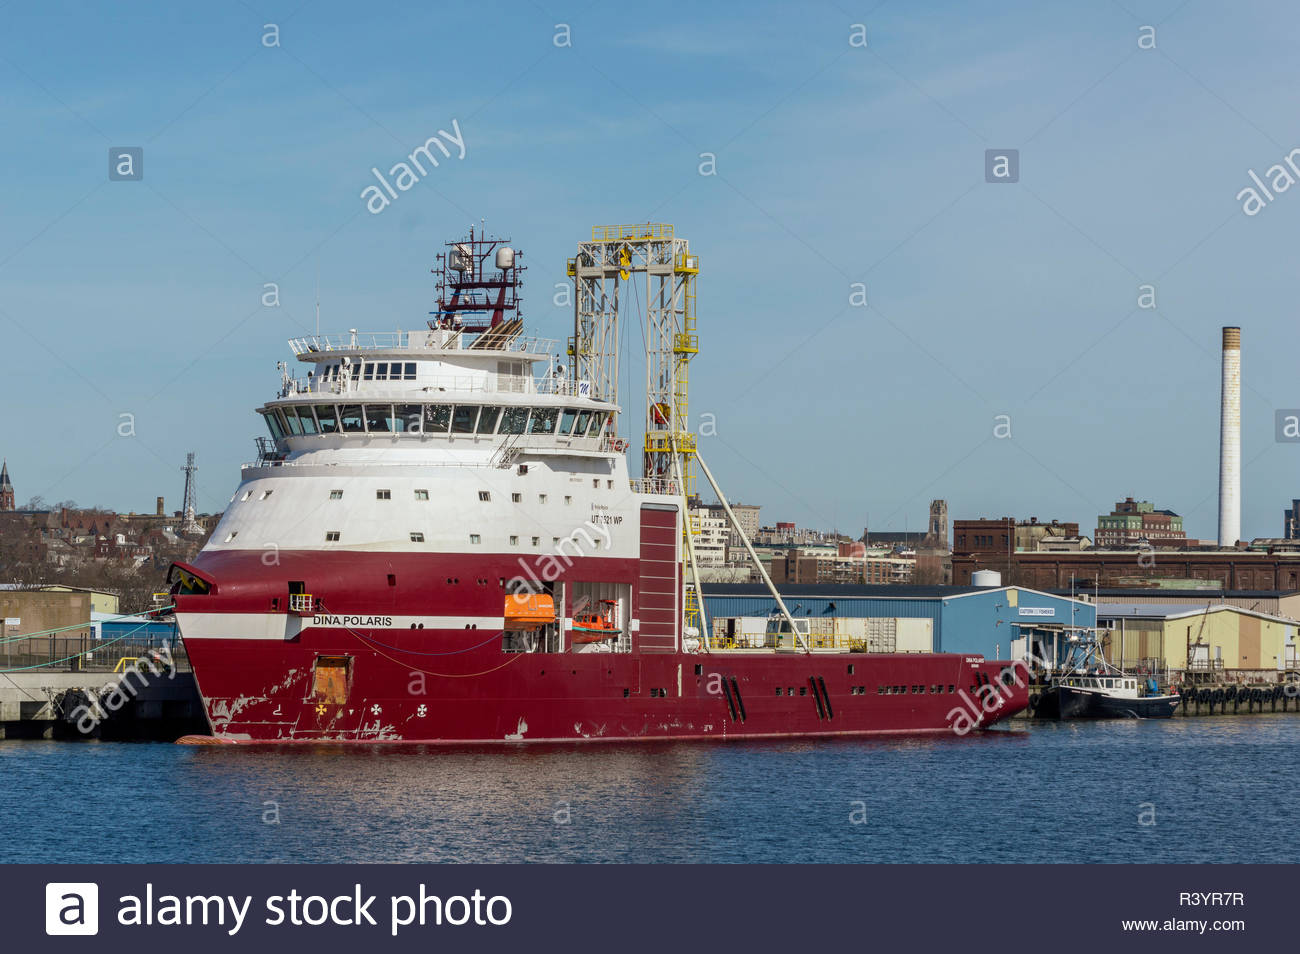 New Bedford, MA, USA - April 24, 2018: Geotechnical drilling vessel Dina Polaris, hailing port Bergen, Norway, docked at planned New Bedford terminal - Stock Image